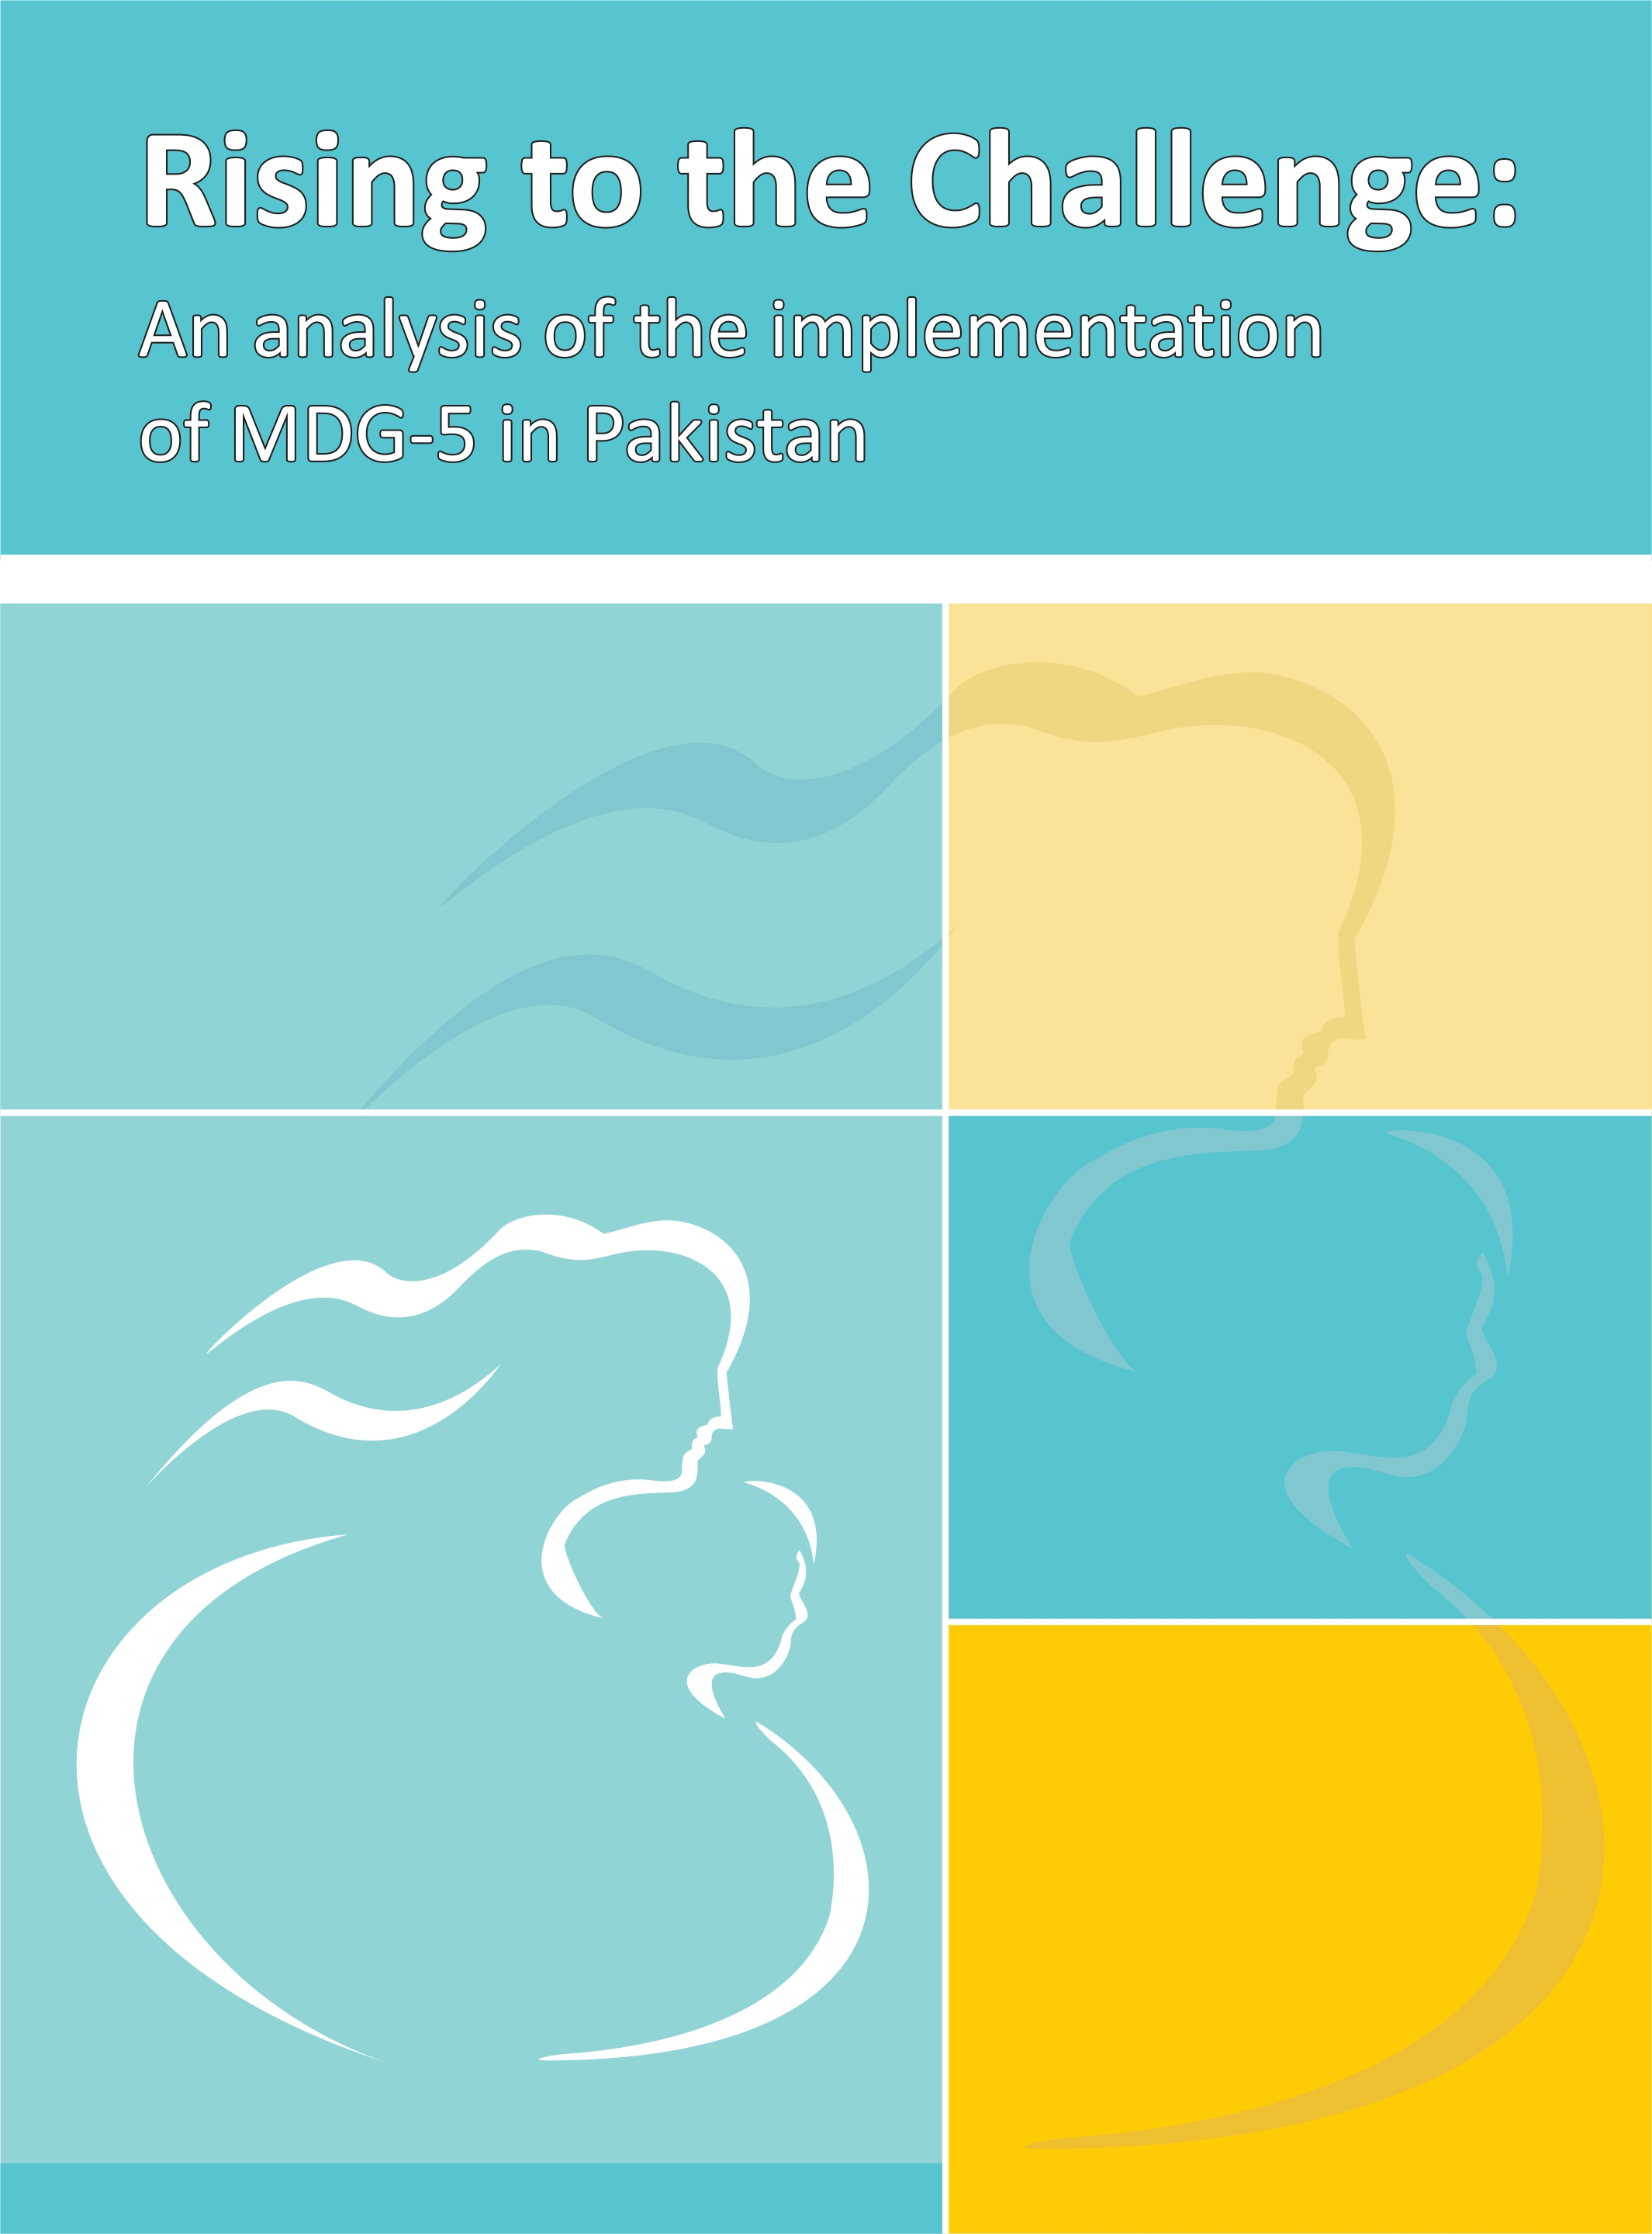 Rising to the Challenge An analysis of the implementation of MDG-5 in Pakistan